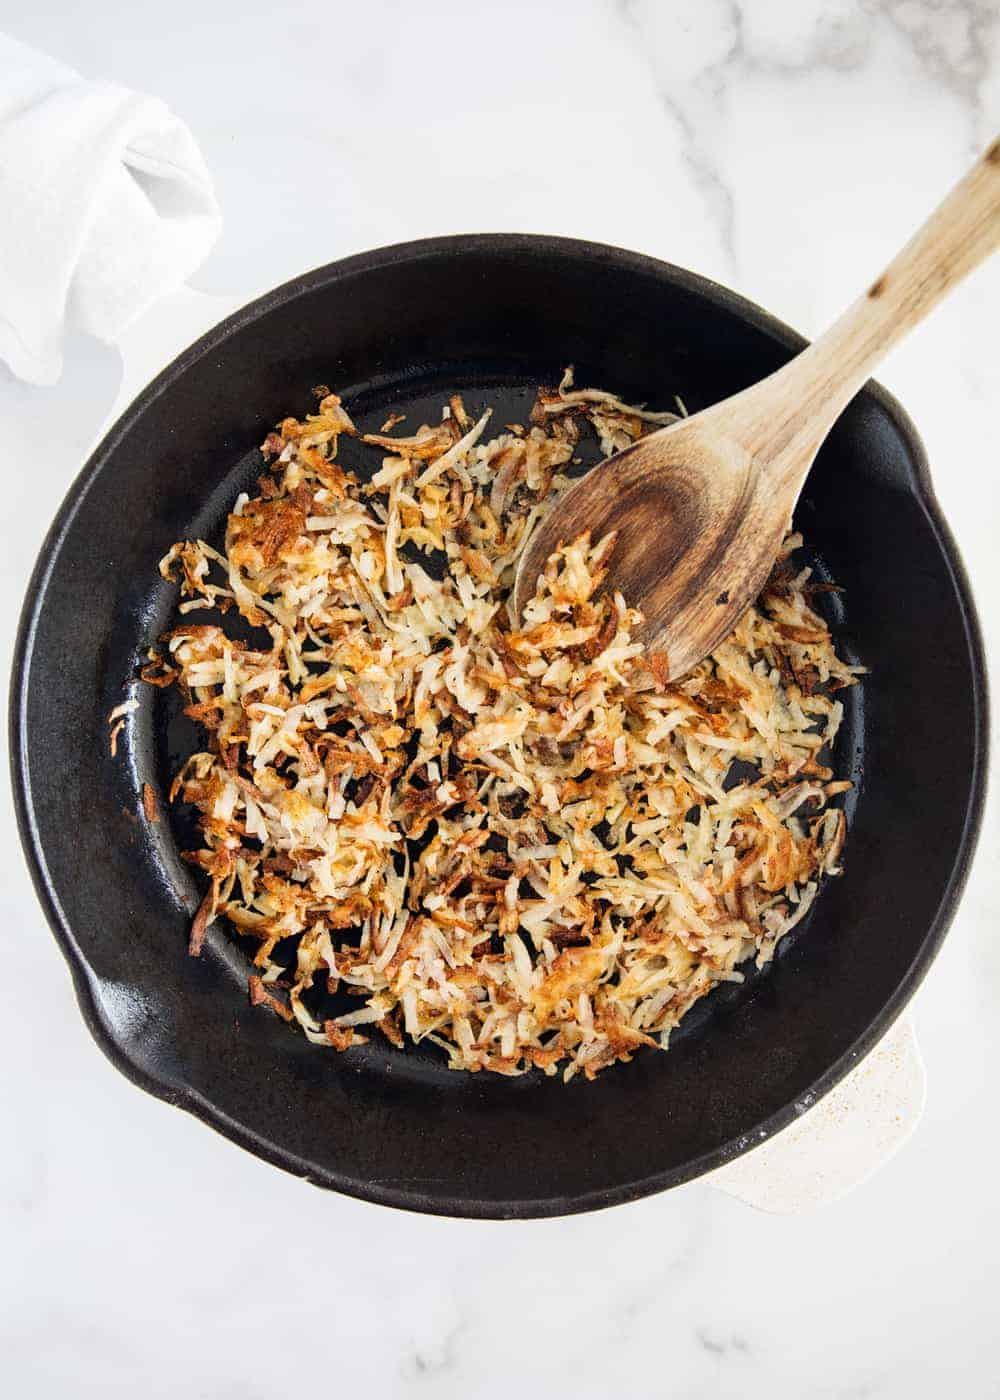 cooking hash browns in skillet